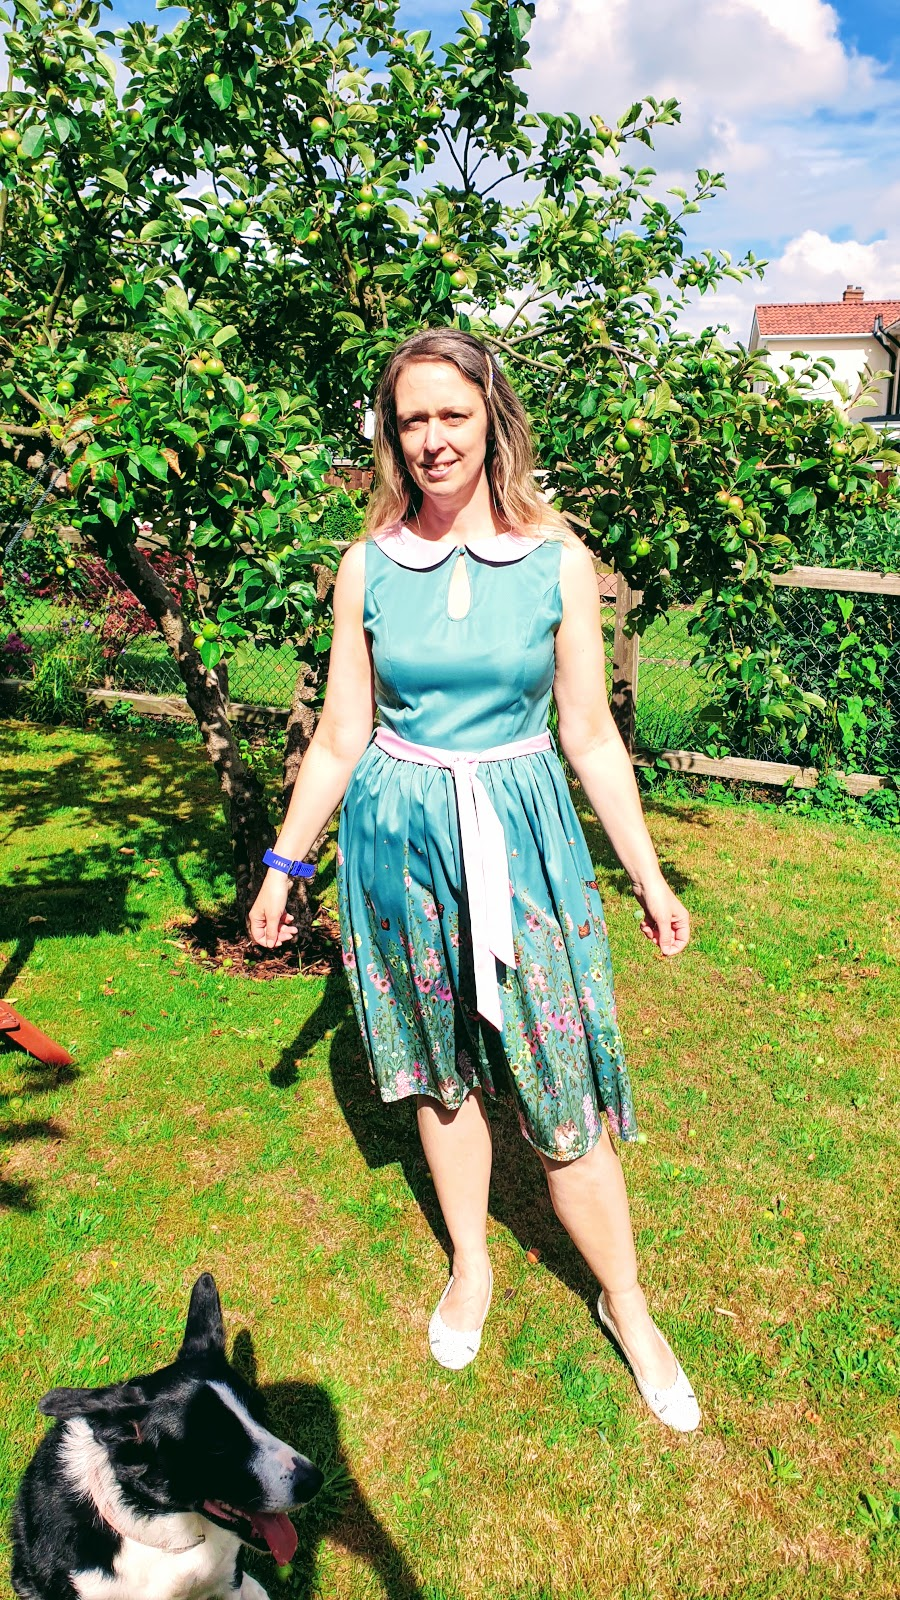 Vintage Swing Dress And Afternoon Tea In The Garden